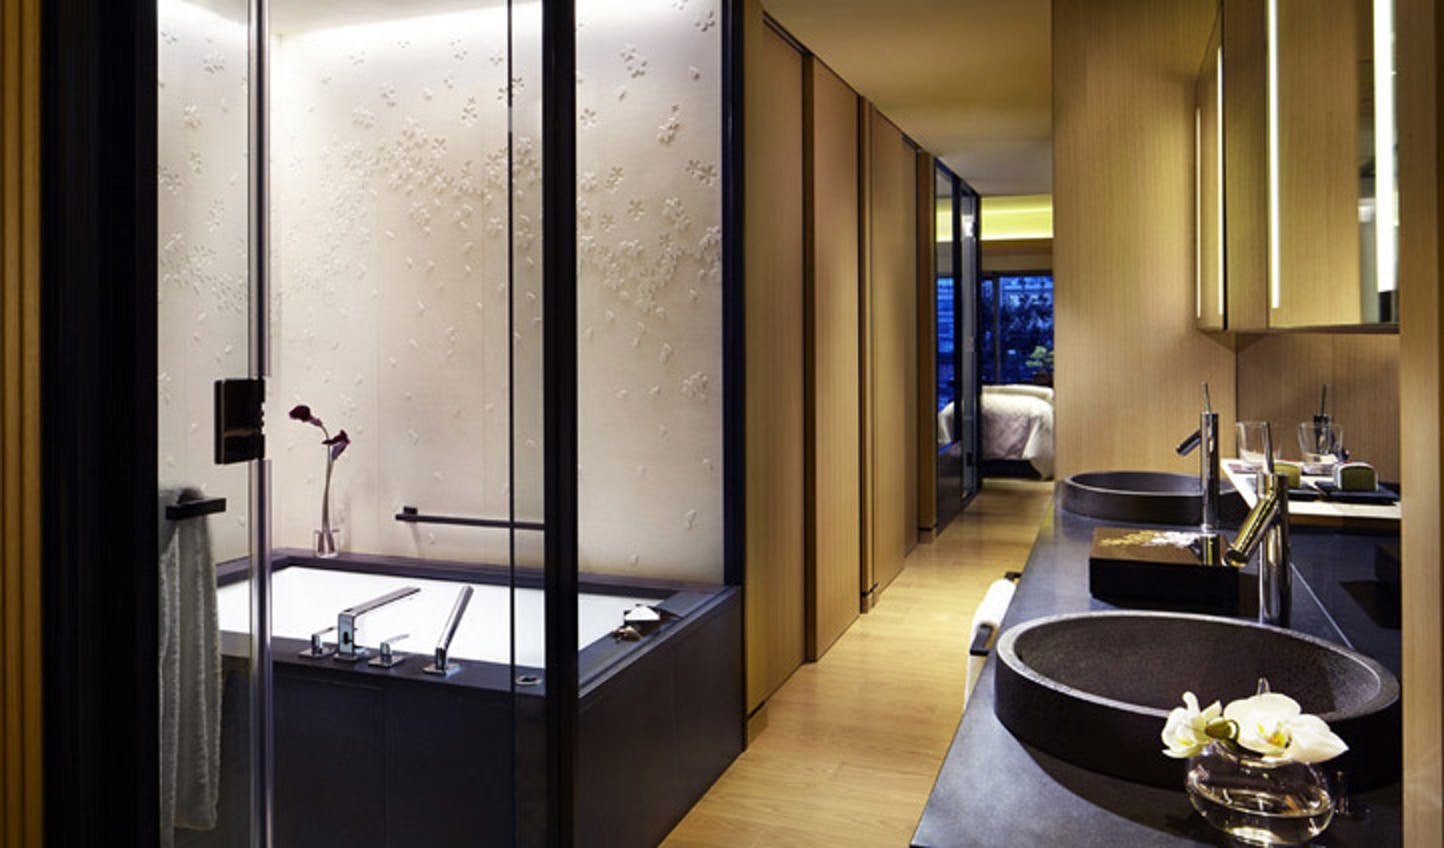 One of the suites at the Ritz-Carlton, Kyoto